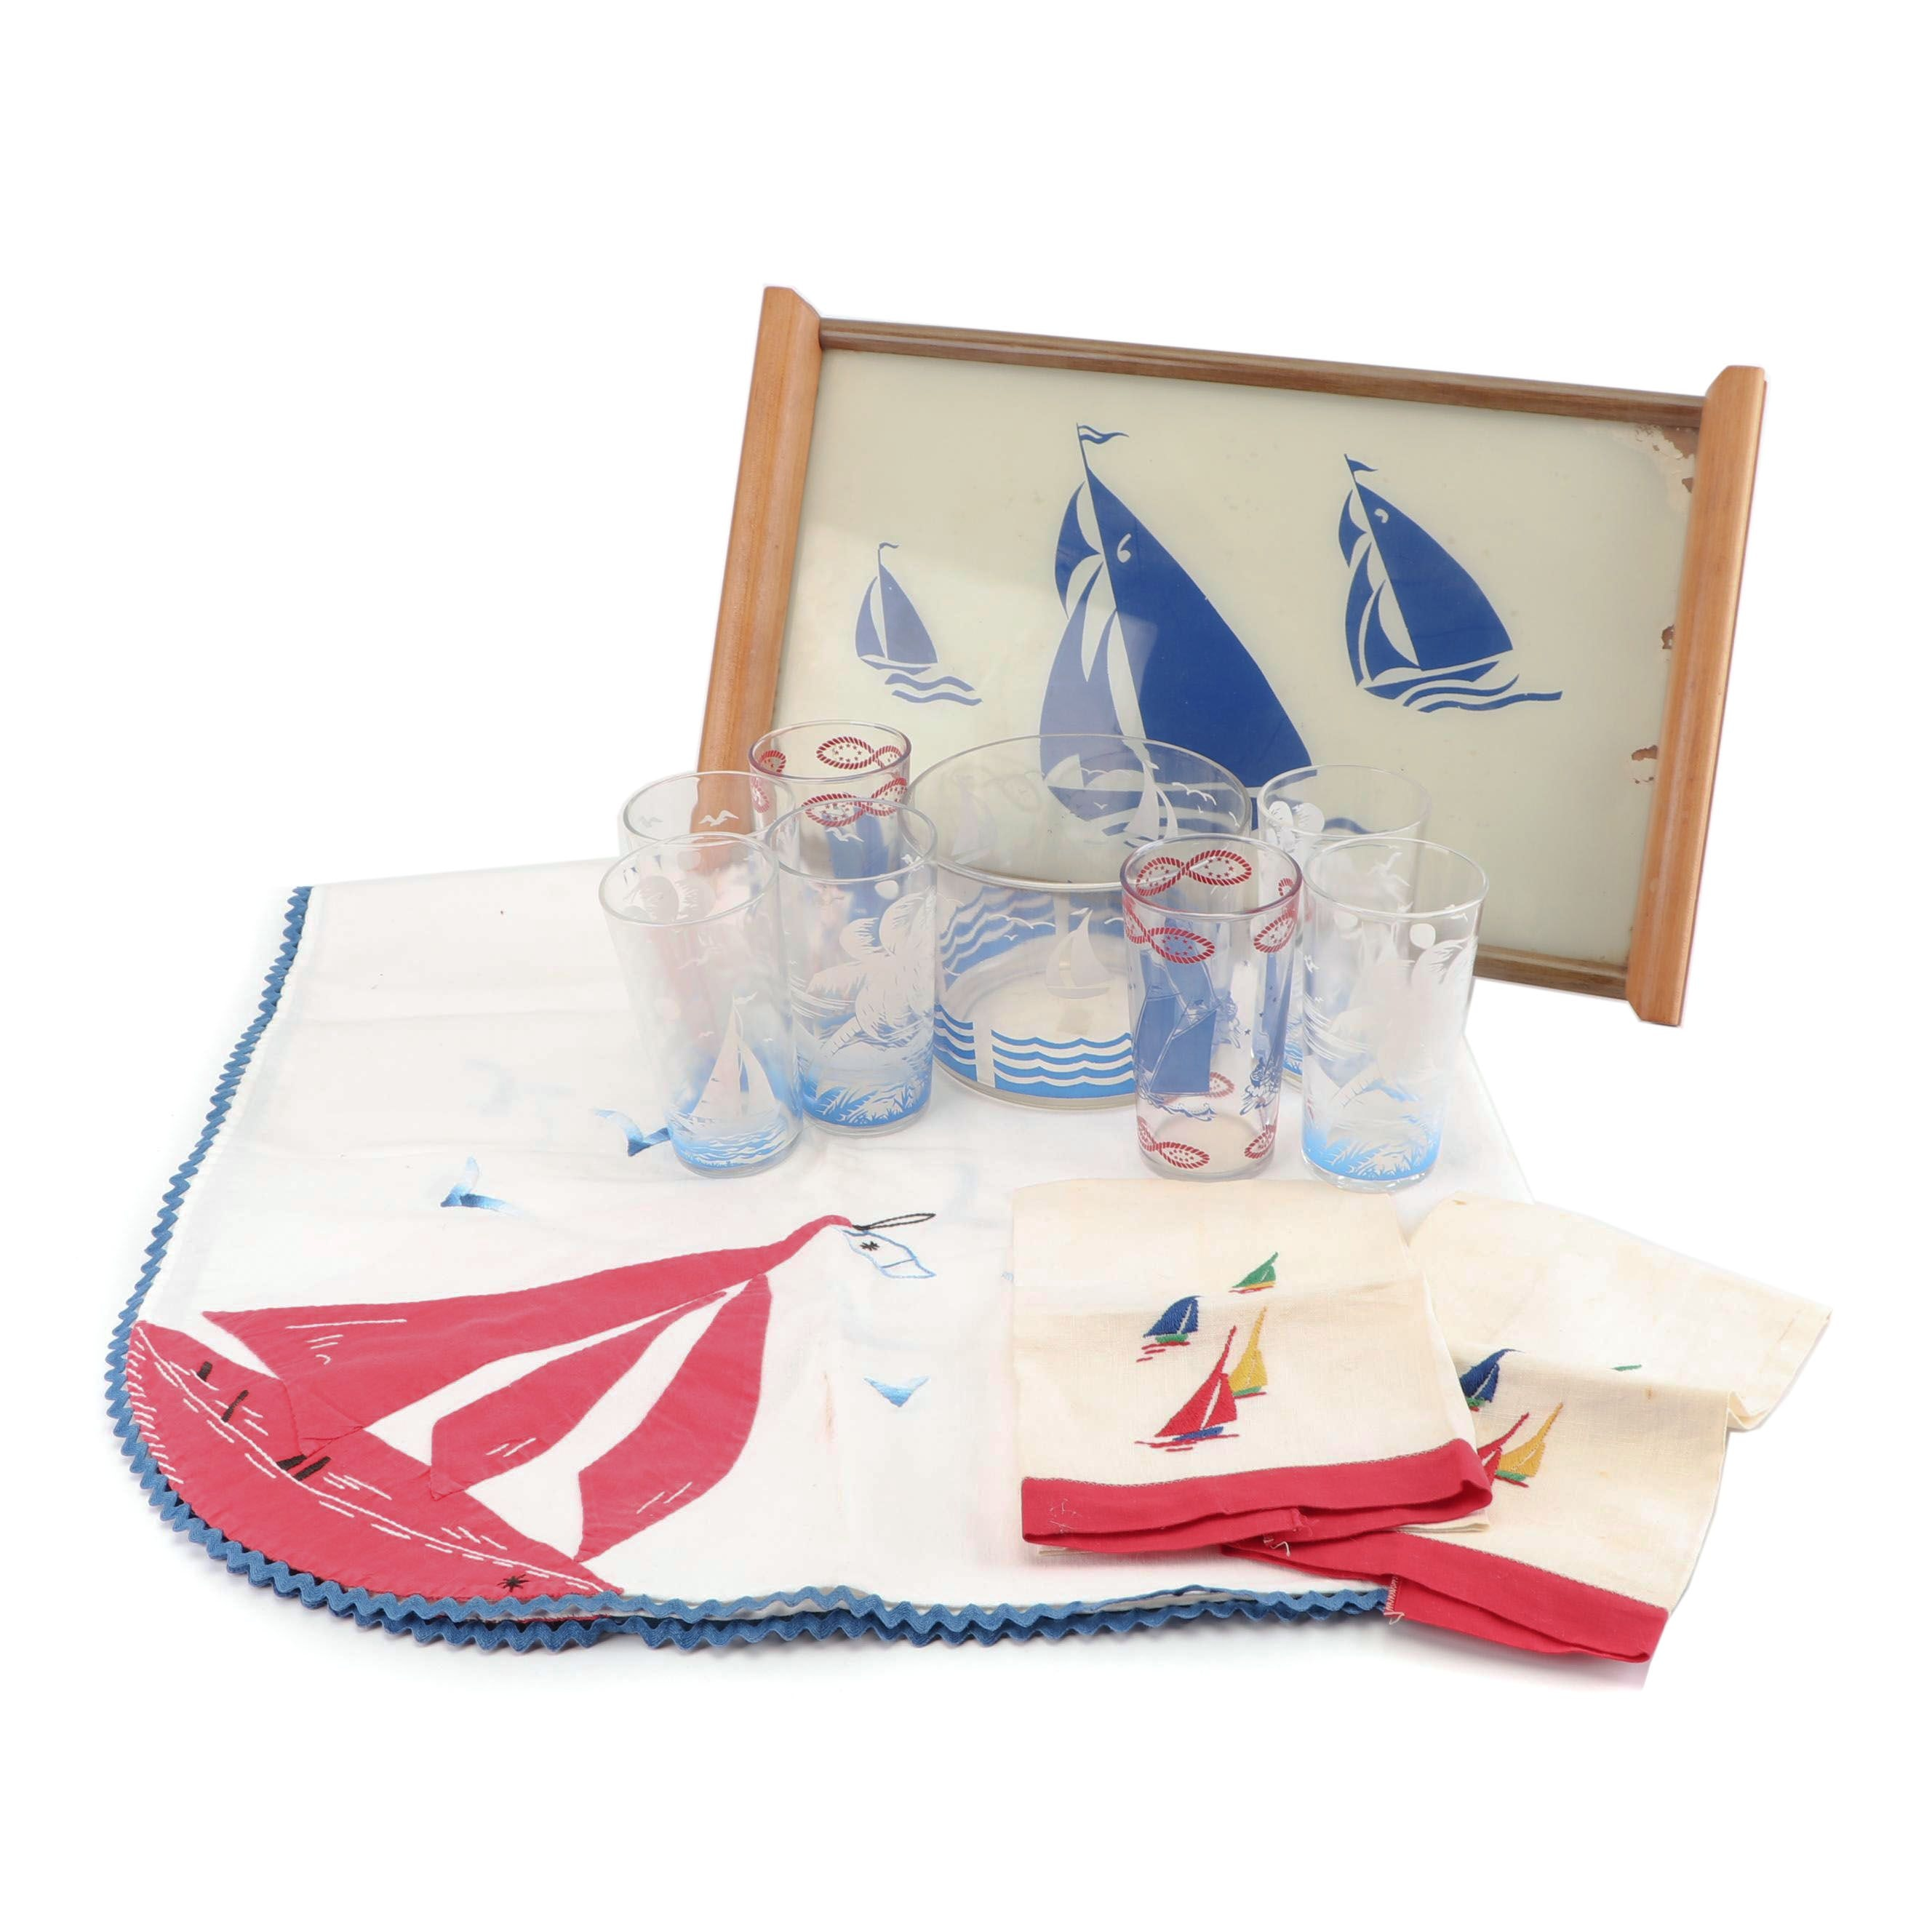 Sailboat Motif Tumbers and Ice Bucket with Linens and Tray, Vintage